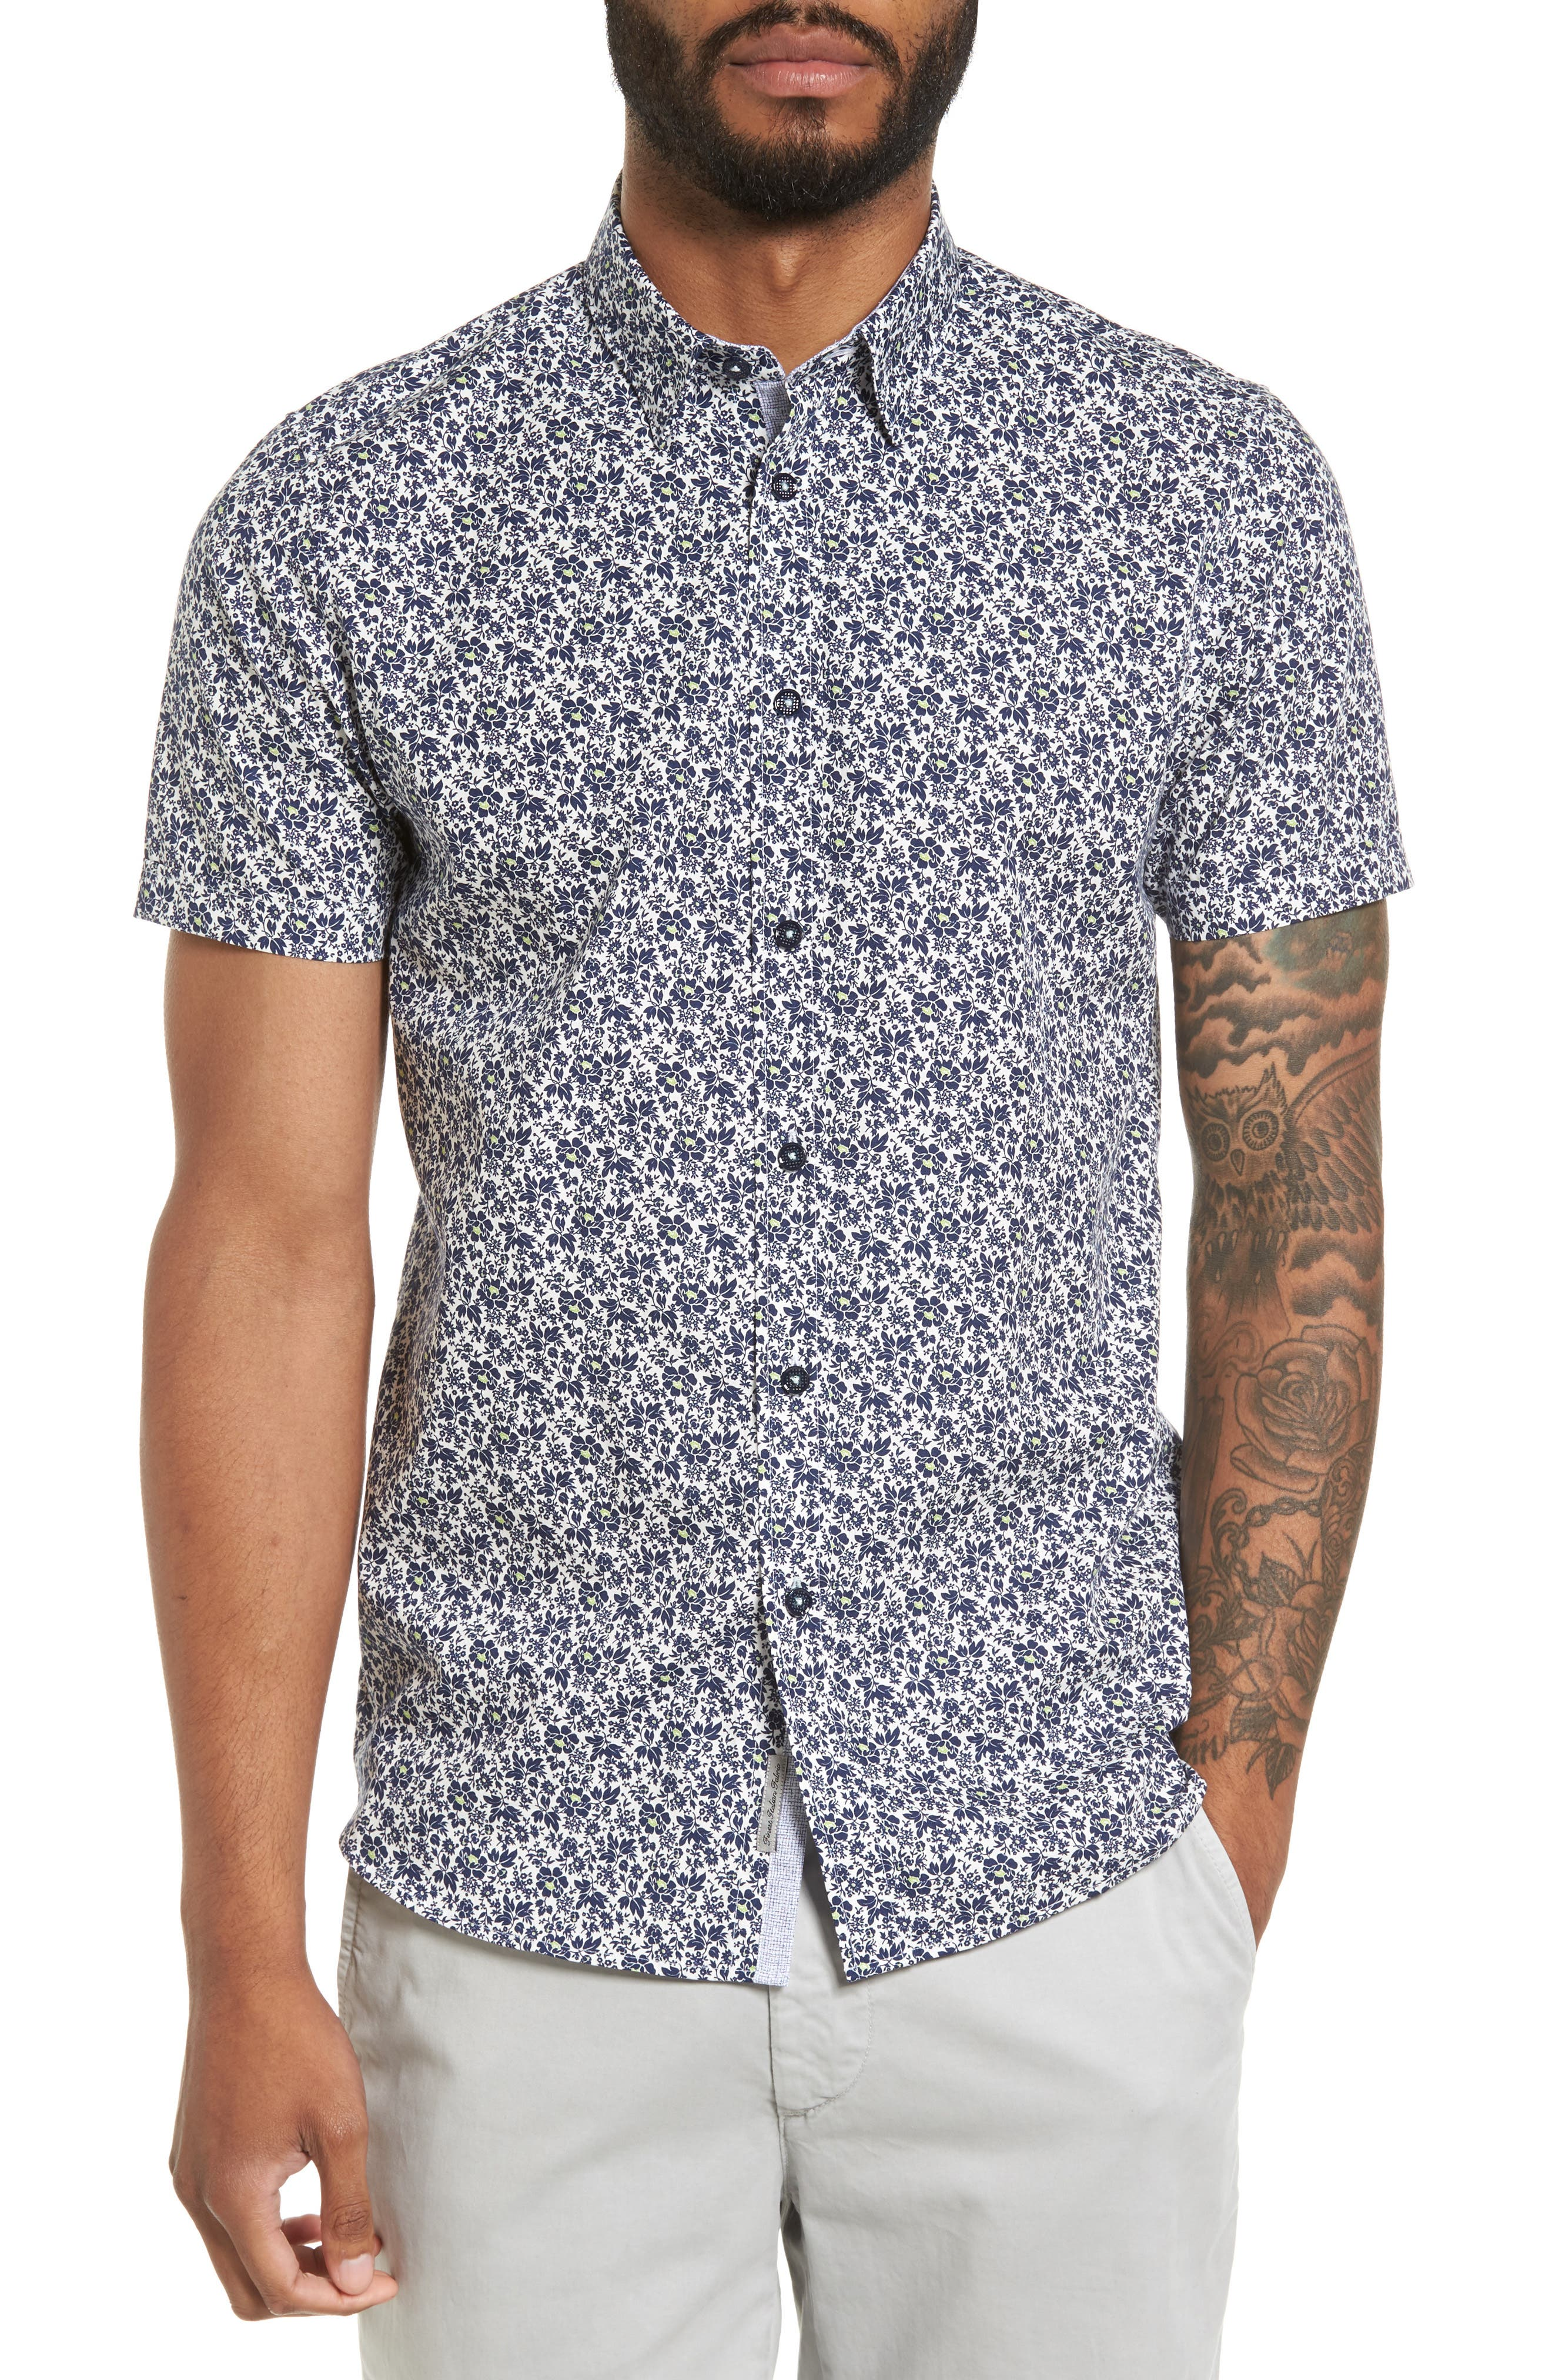 Main Image - Ted Baker London Alygar Slim Fit Floral Woven Shirt